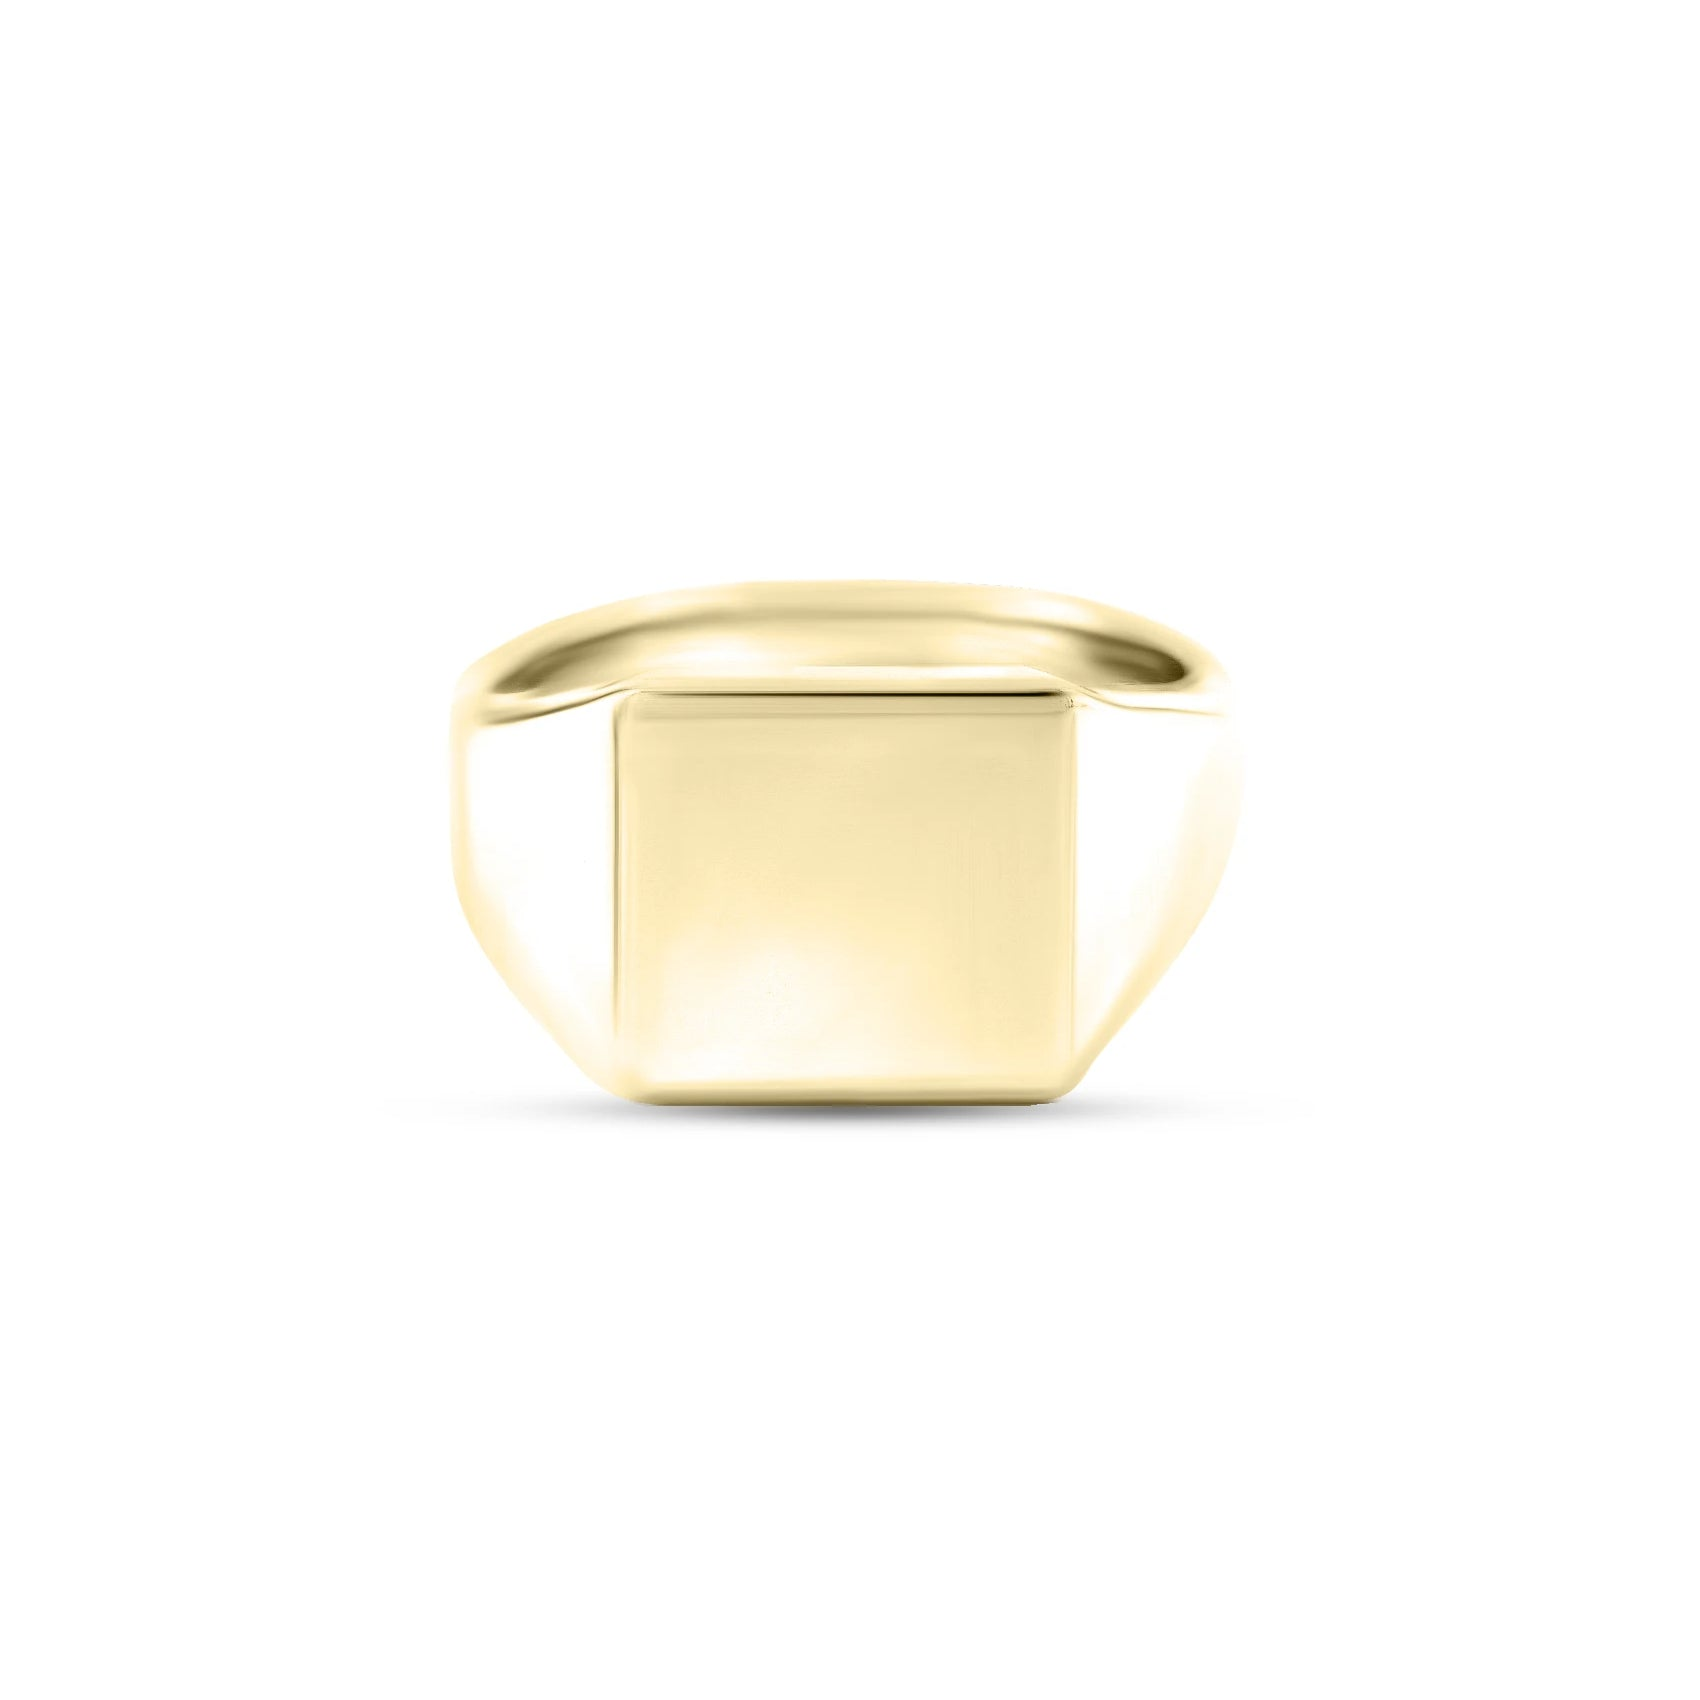 9ct Yellow Gold 12 x 12mm Square Signet Ring